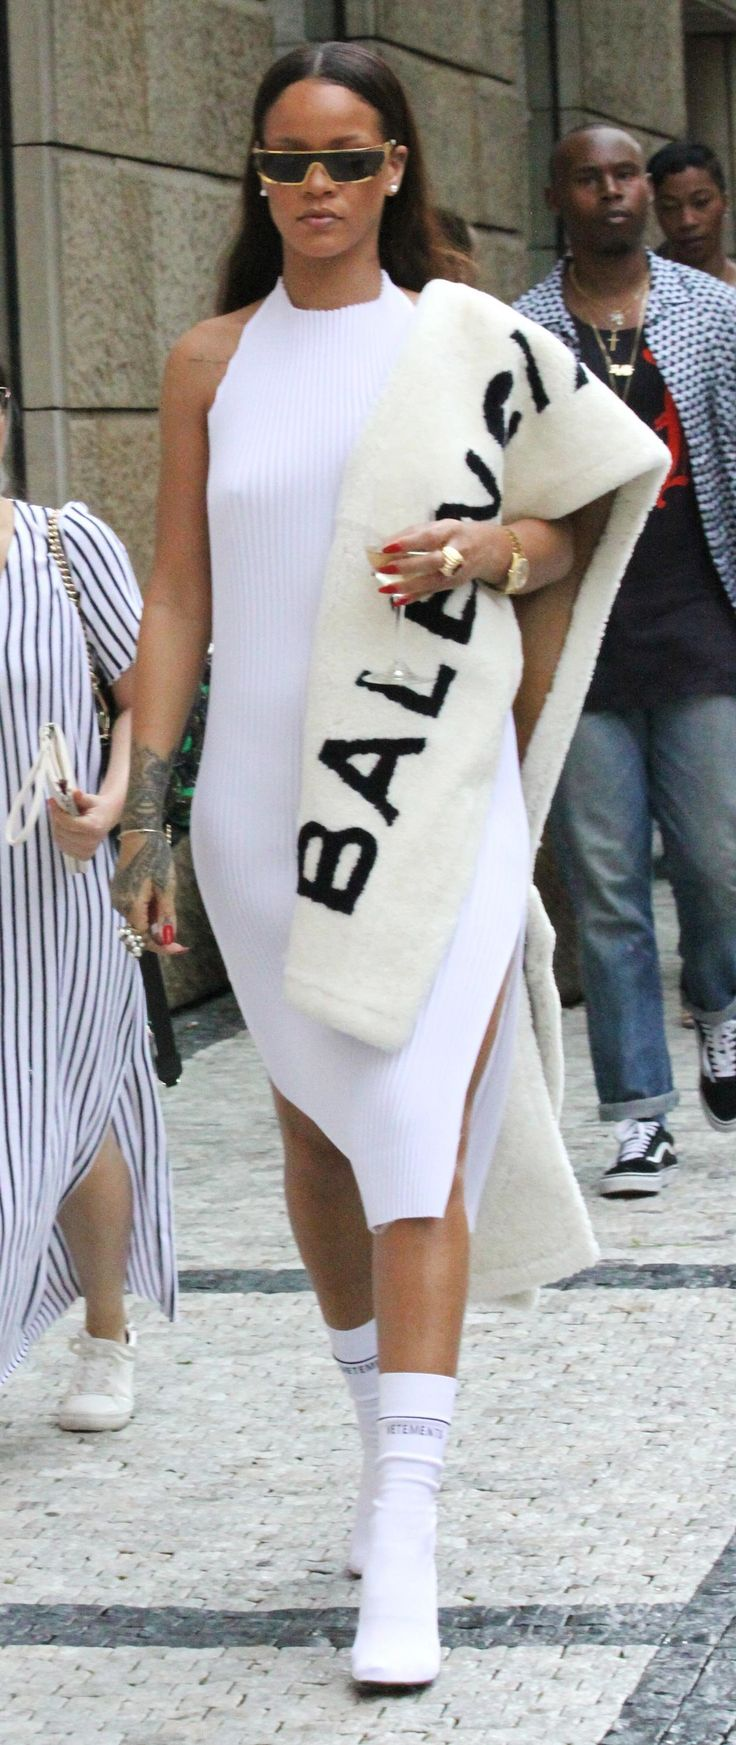 Rihanna Wears Summer Fur Continues to Break Rules and Steal Hearts http://ift.tt/2a0sUht #Vogue #Fashion